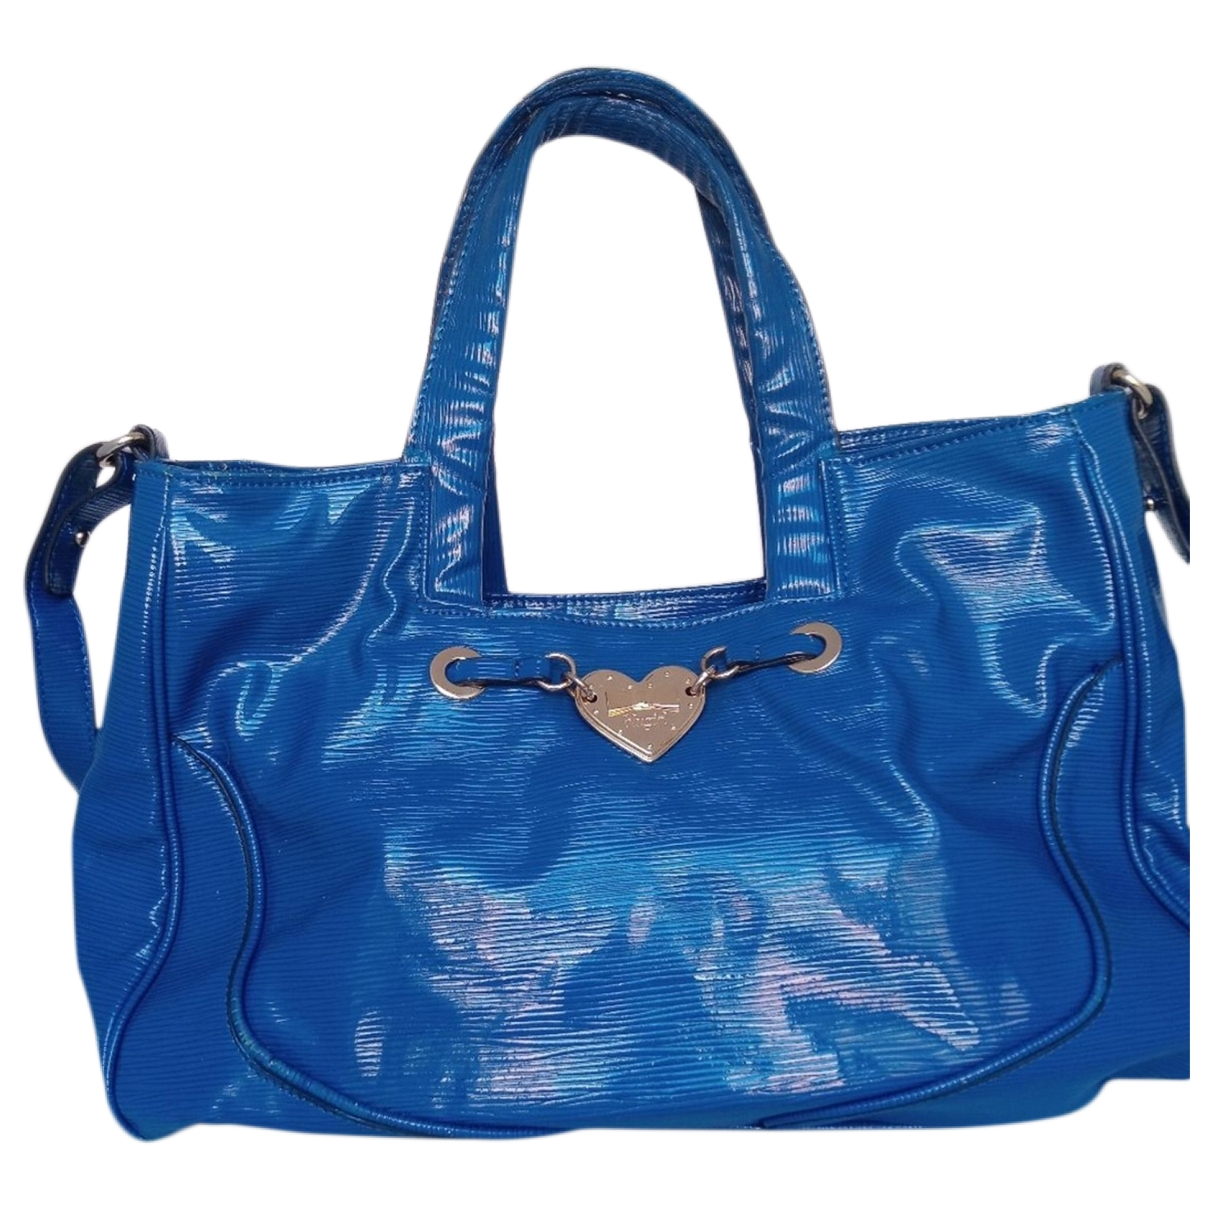 Blumarine \N Blue Patent leather handbag for Women \N